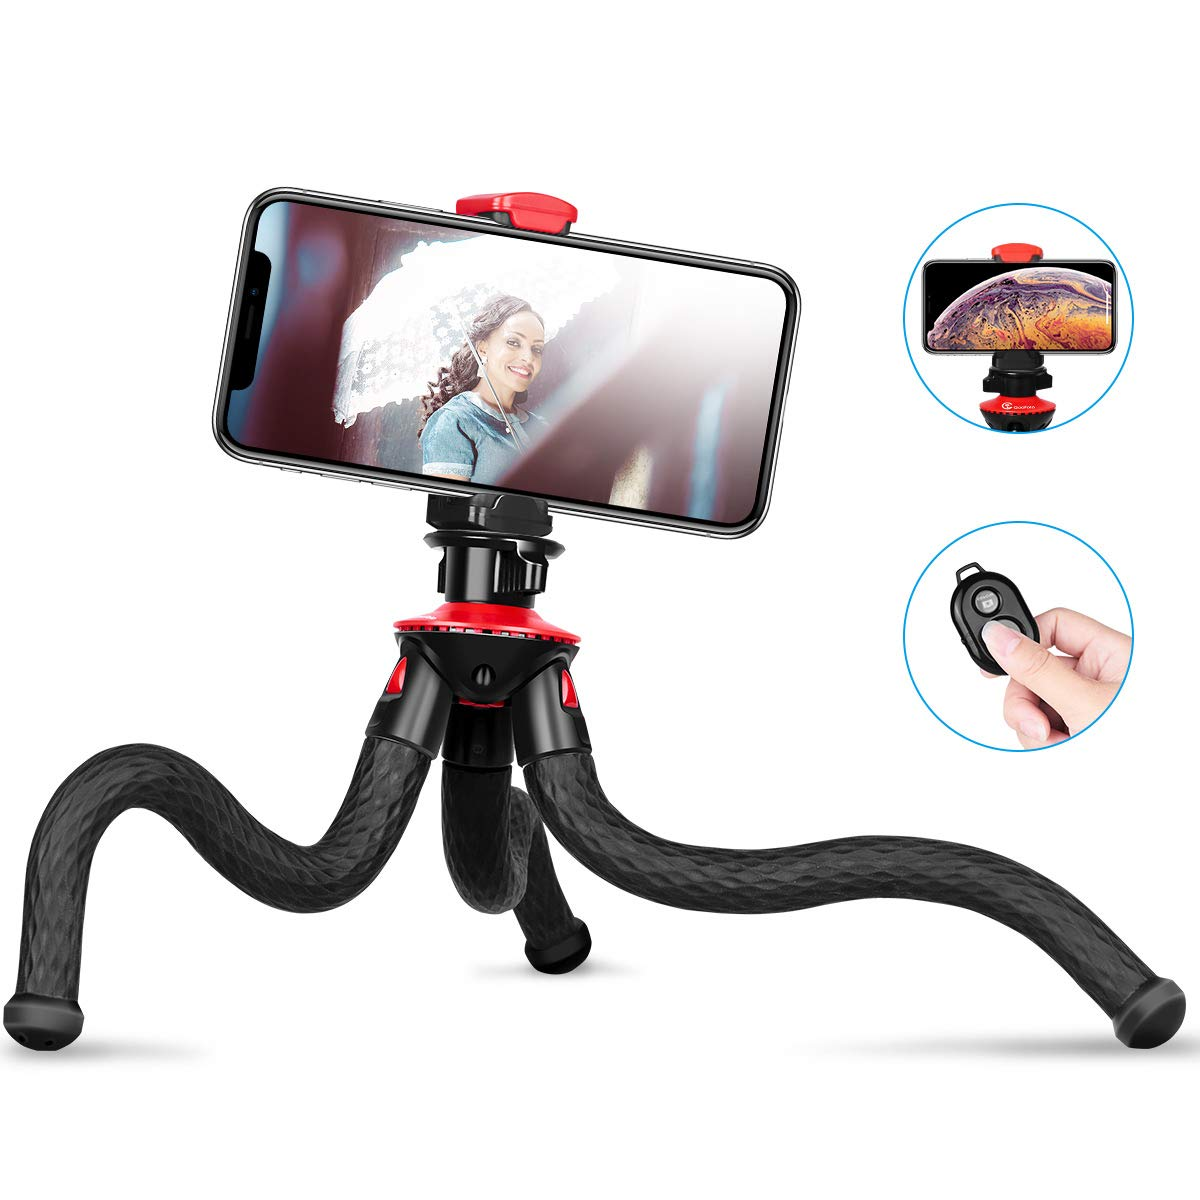 GooFoto Flexible Tripod, Phone Tripod for iPhone, Waterproof Smartphone Tripod for Samsung with Bluetooth Remote, Camera Tripod with 1/4'' Screw, Bendy Tripod with Cell Phone Clip